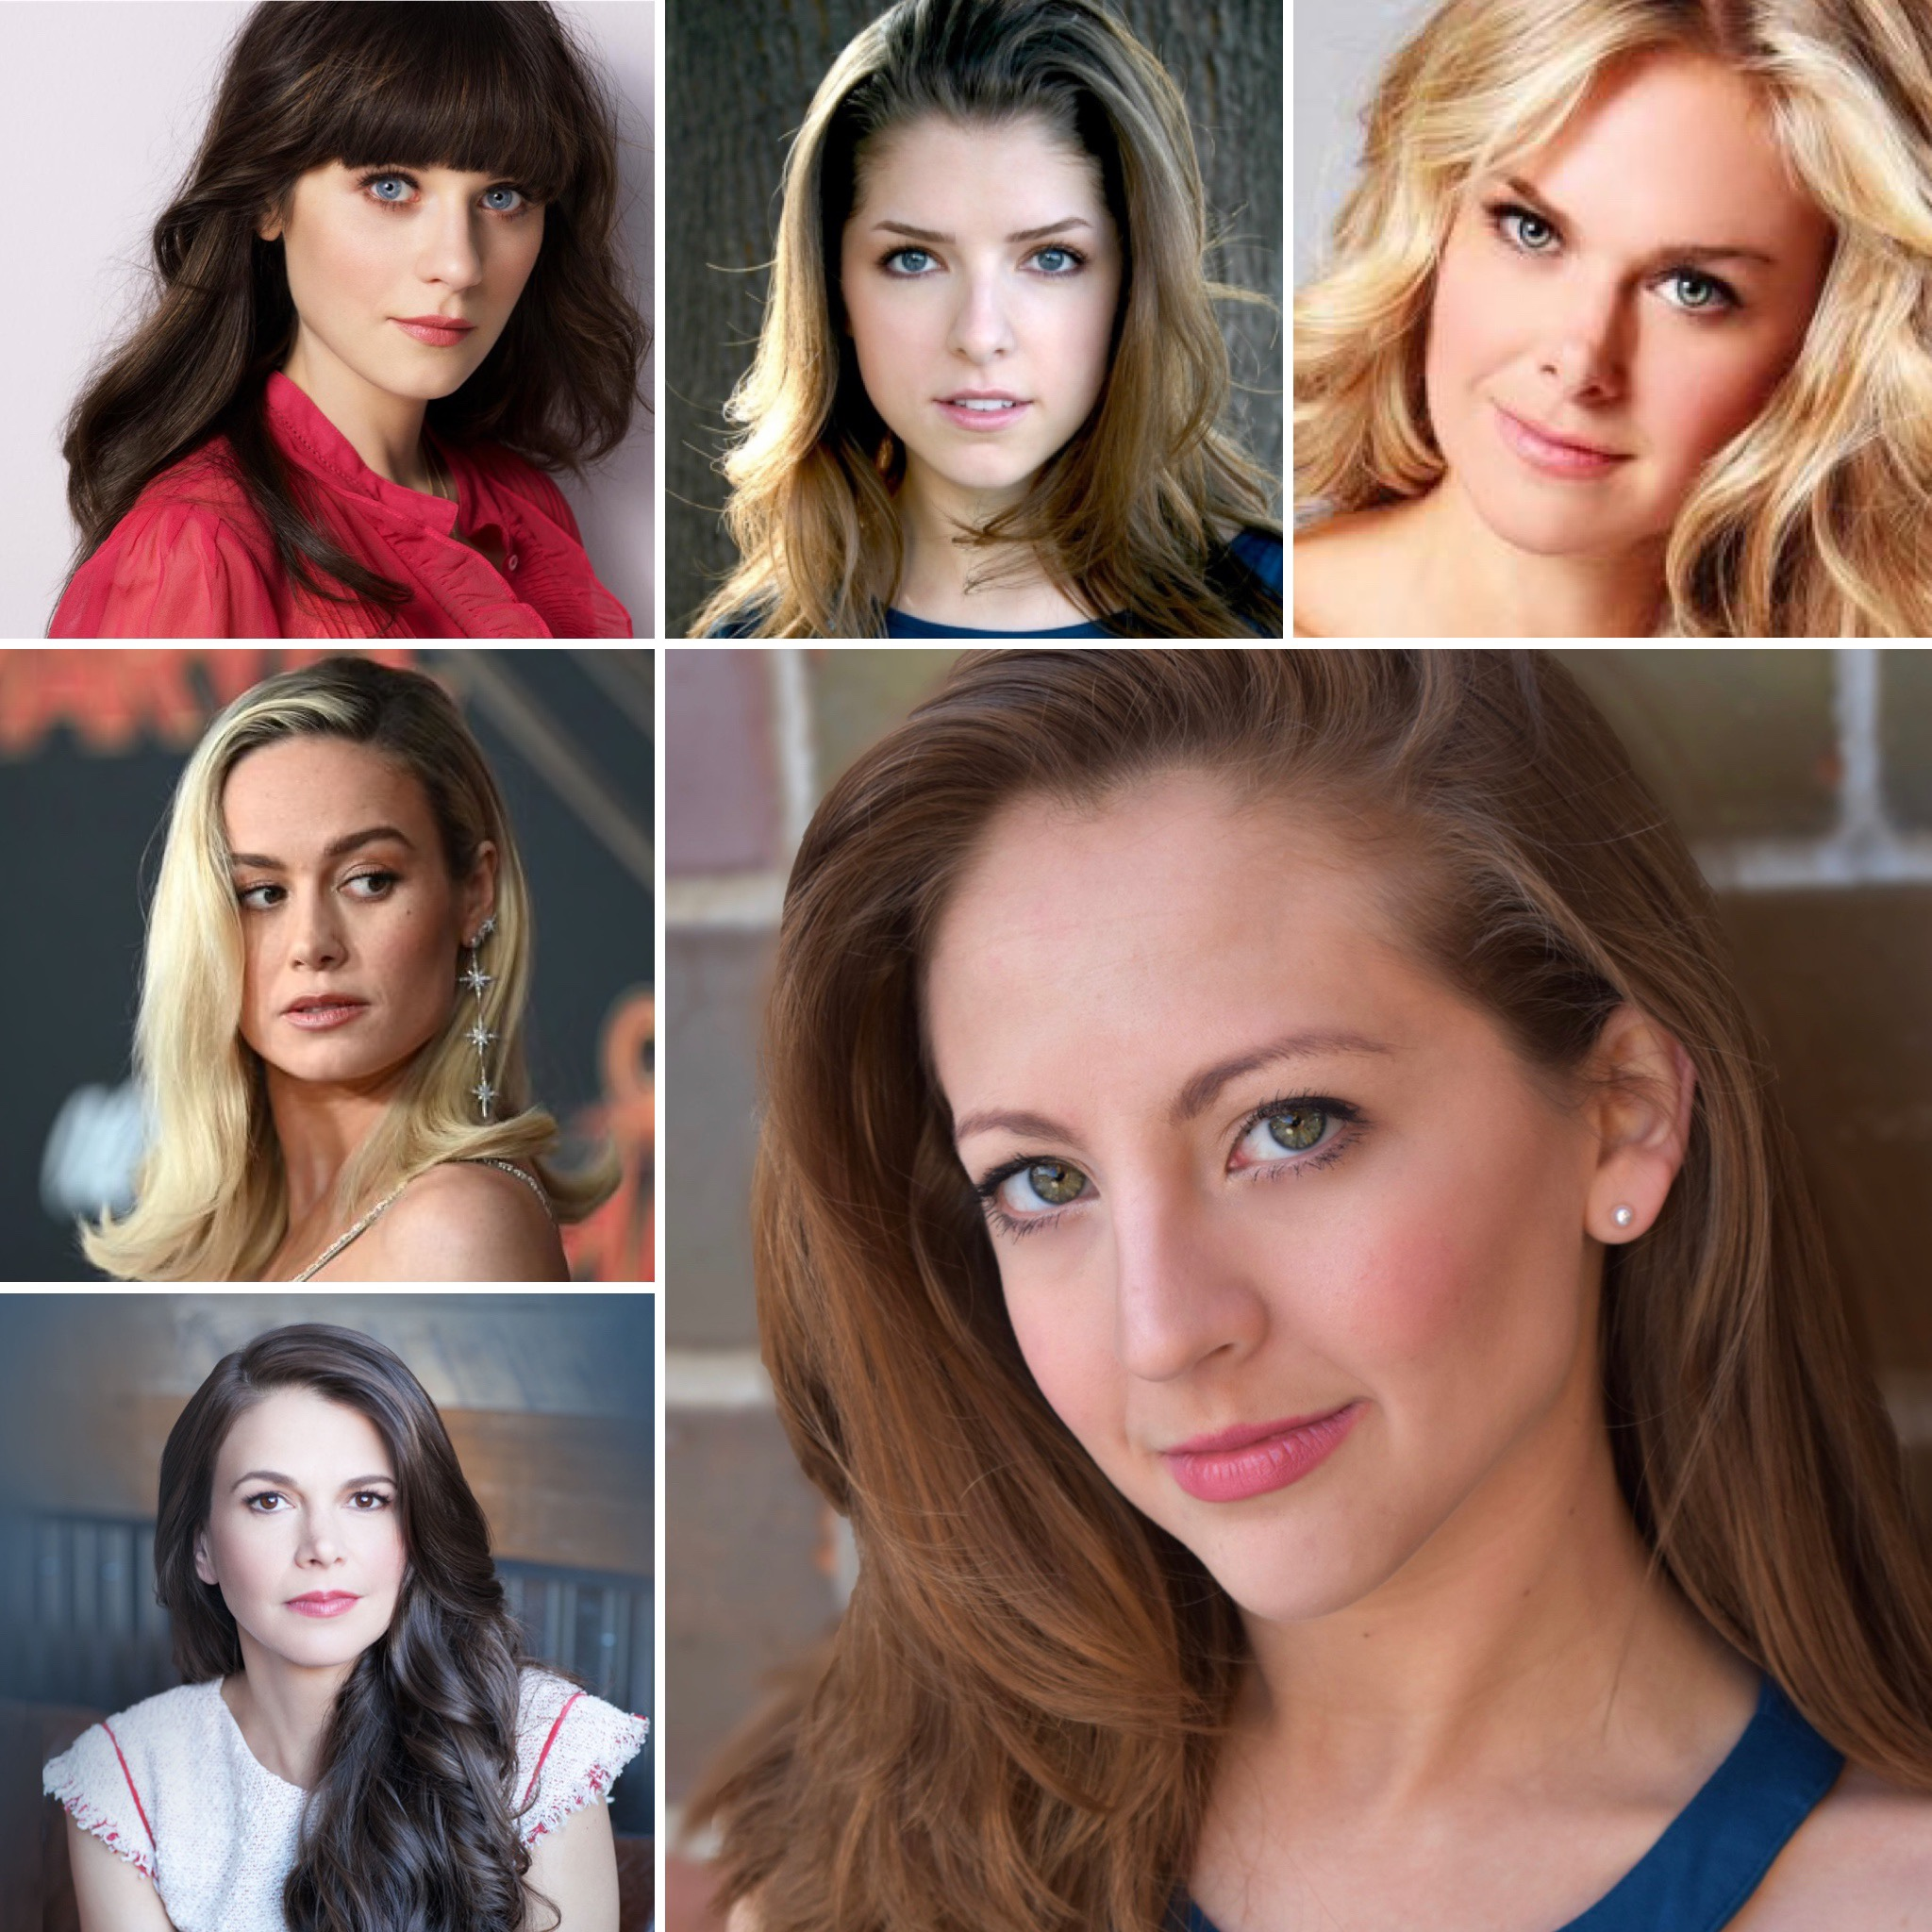 Like Who? - I have been compared to Anna Kendrick, Brie Larson, Laura Bell Bundy, Sutton Foster, and Zooey Deschanel.My frequent casting character types are: Leading Lady, Firebrand, Femme Fatale, maiden, and the Zanni.